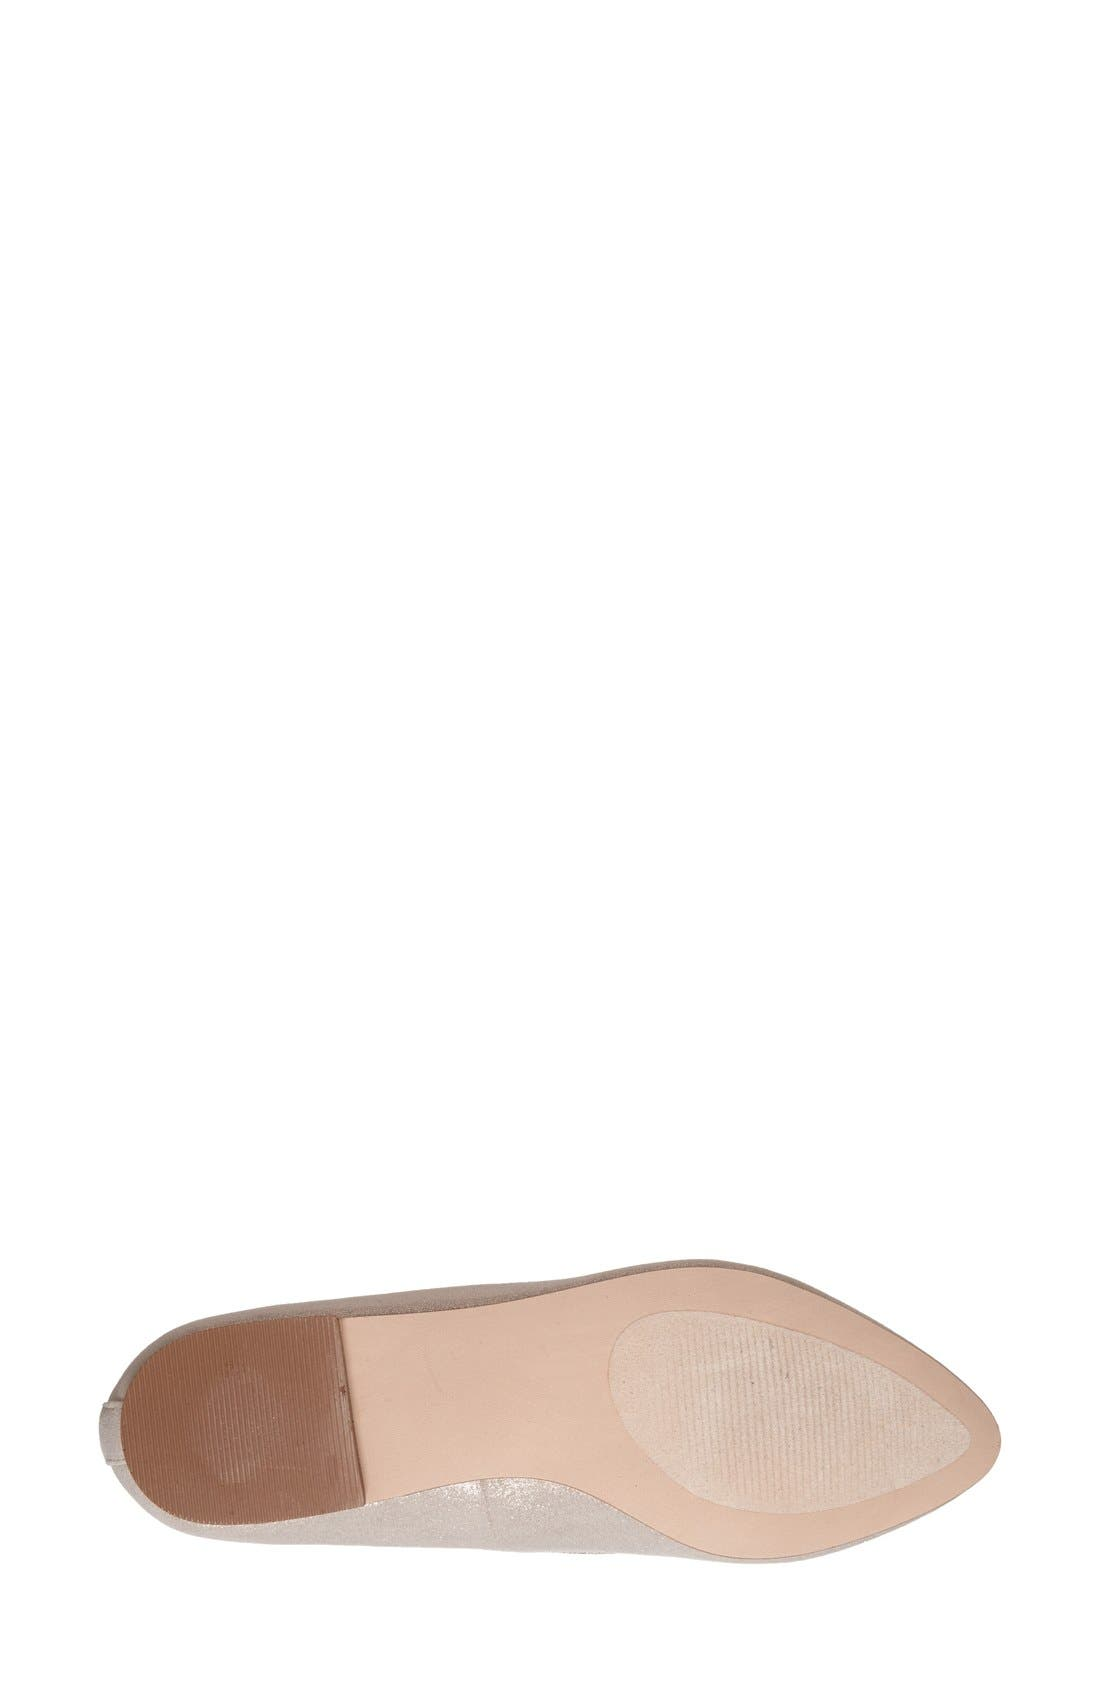 'Sean' Pointy Toe Loafer,                             Alternate thumbnail 4, color,                             Nude Metallic